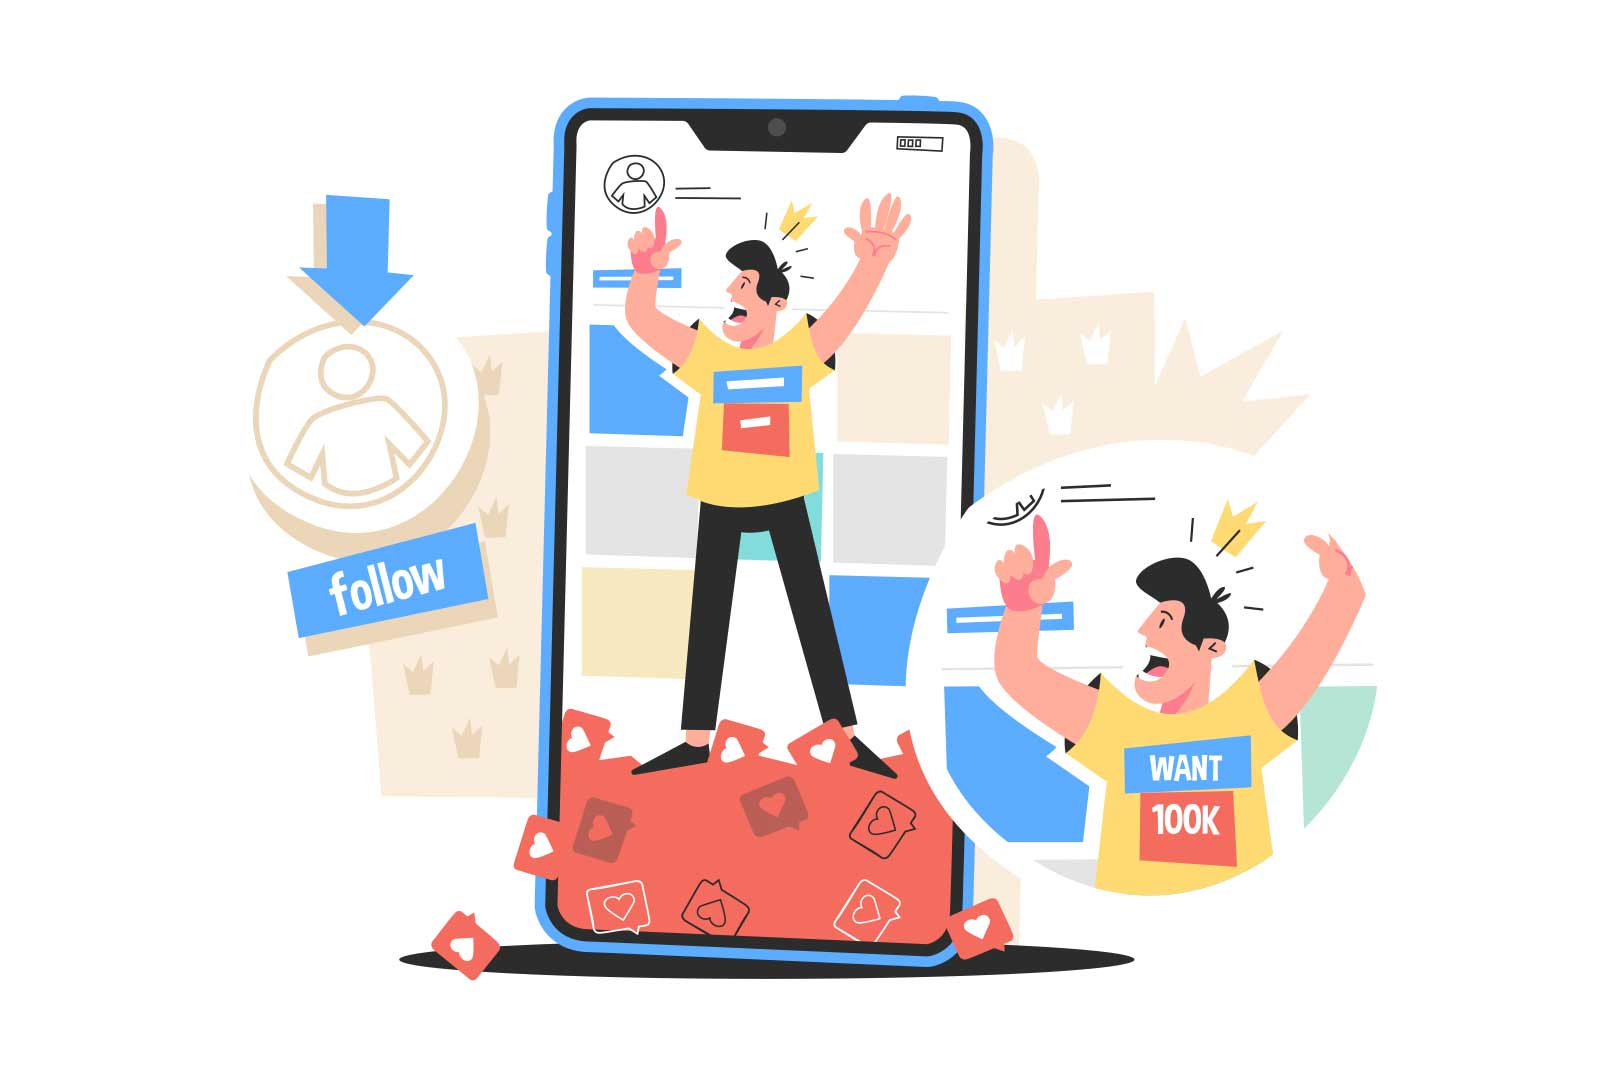 Guy browsing social networks account vector illustration. Man wants to increase number of followers flat style design. Smartphone screen with likes signs. Virtual life idea